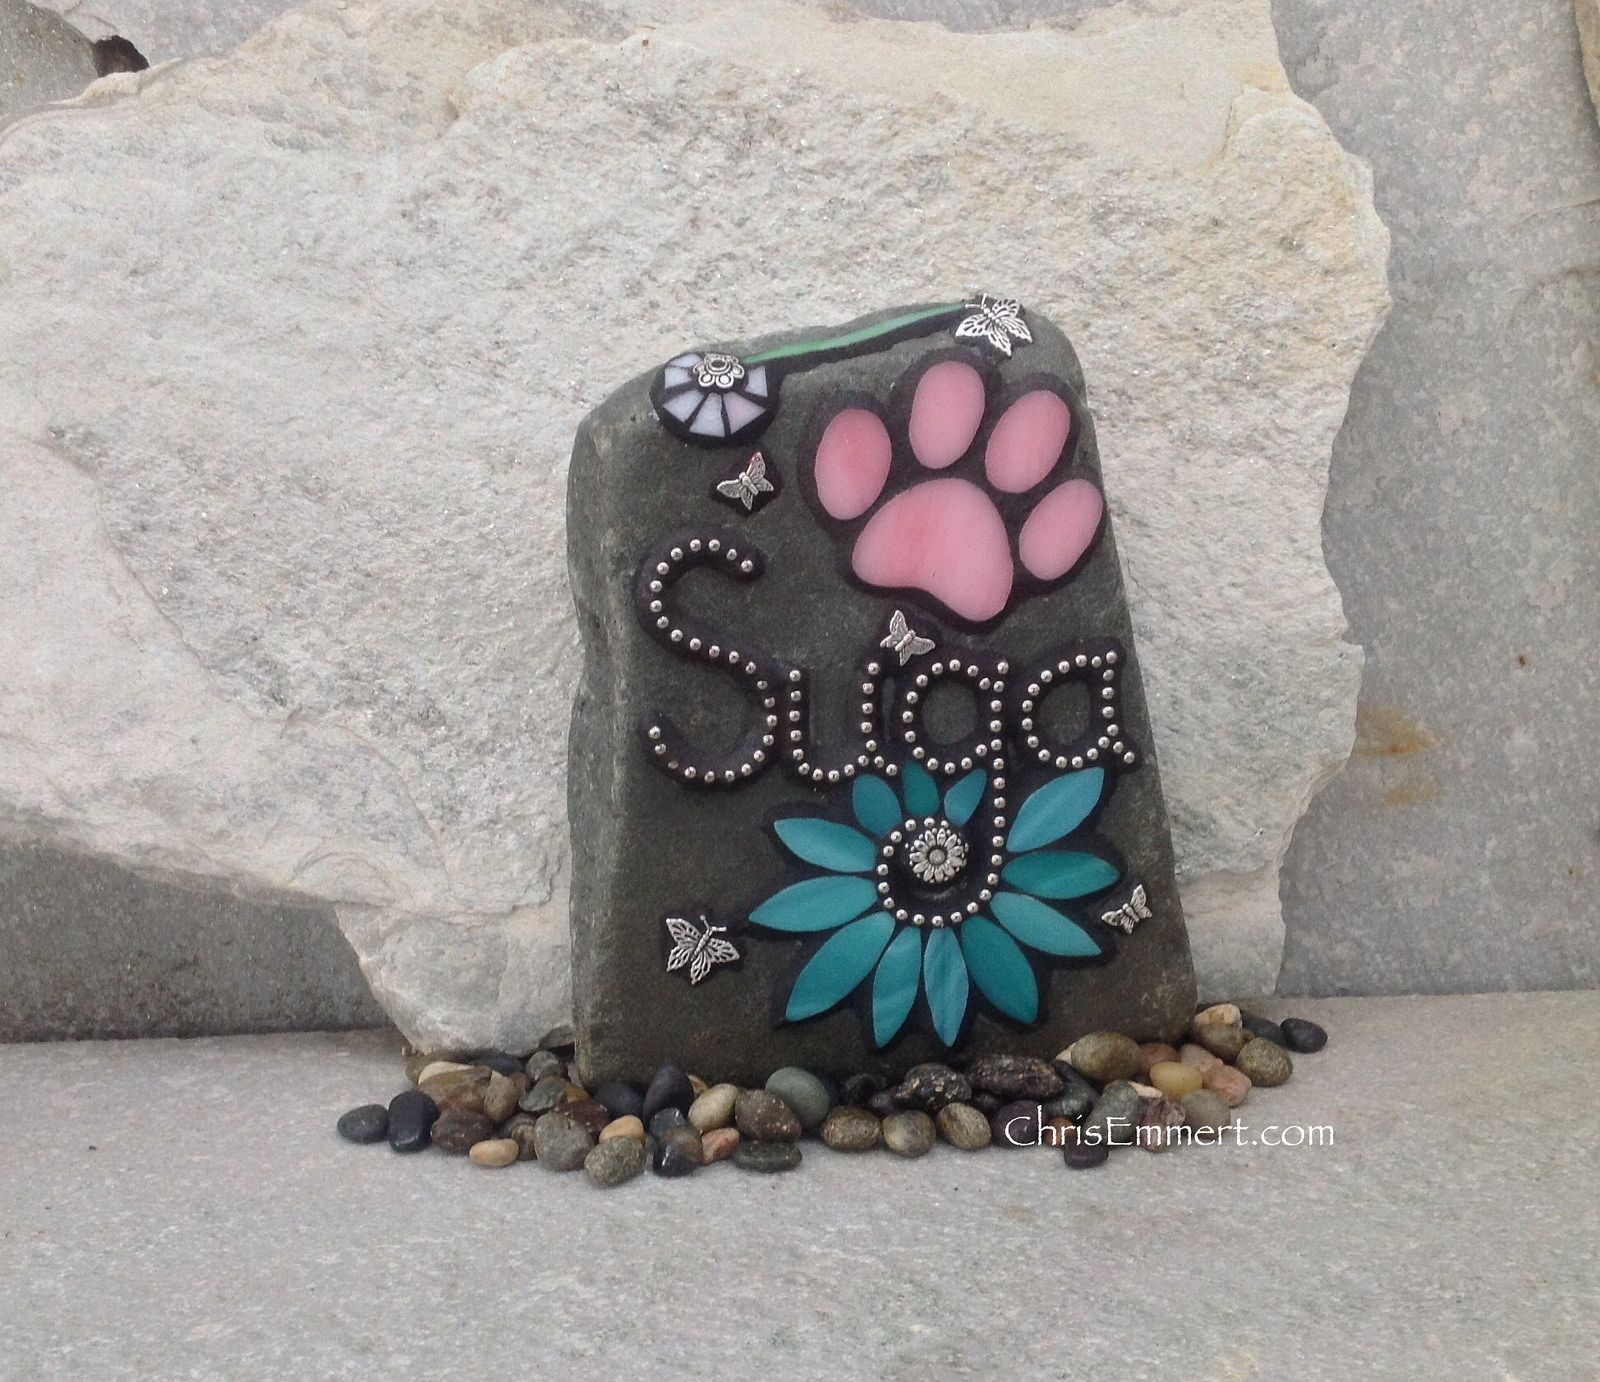 stones pet photo mosaics flickr garden memorials mosaic pin sharing memorial